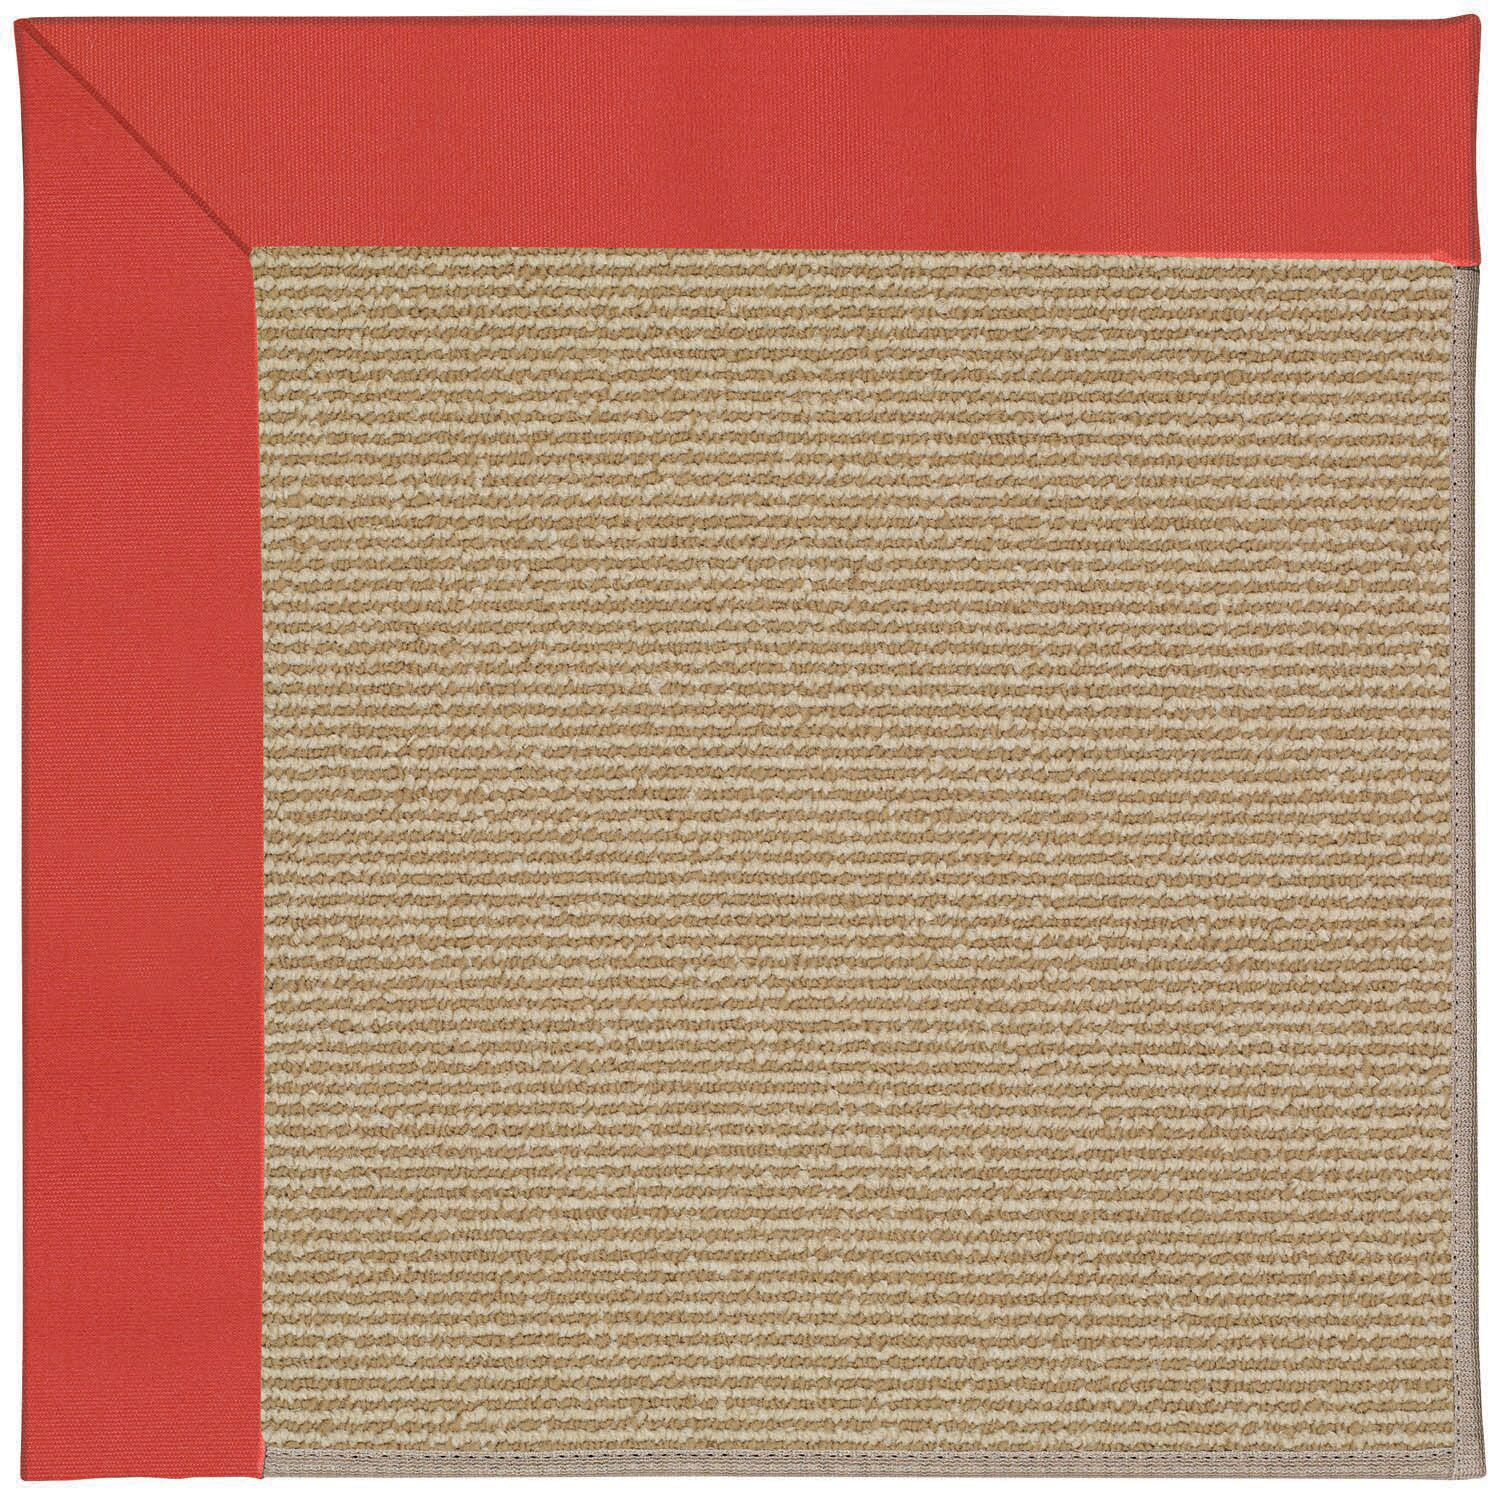 Lisle Machine Tufted Sunset Red/Brown Indoor/Outdoor Area Rug Rug Size: Rectangle 12' x 15'